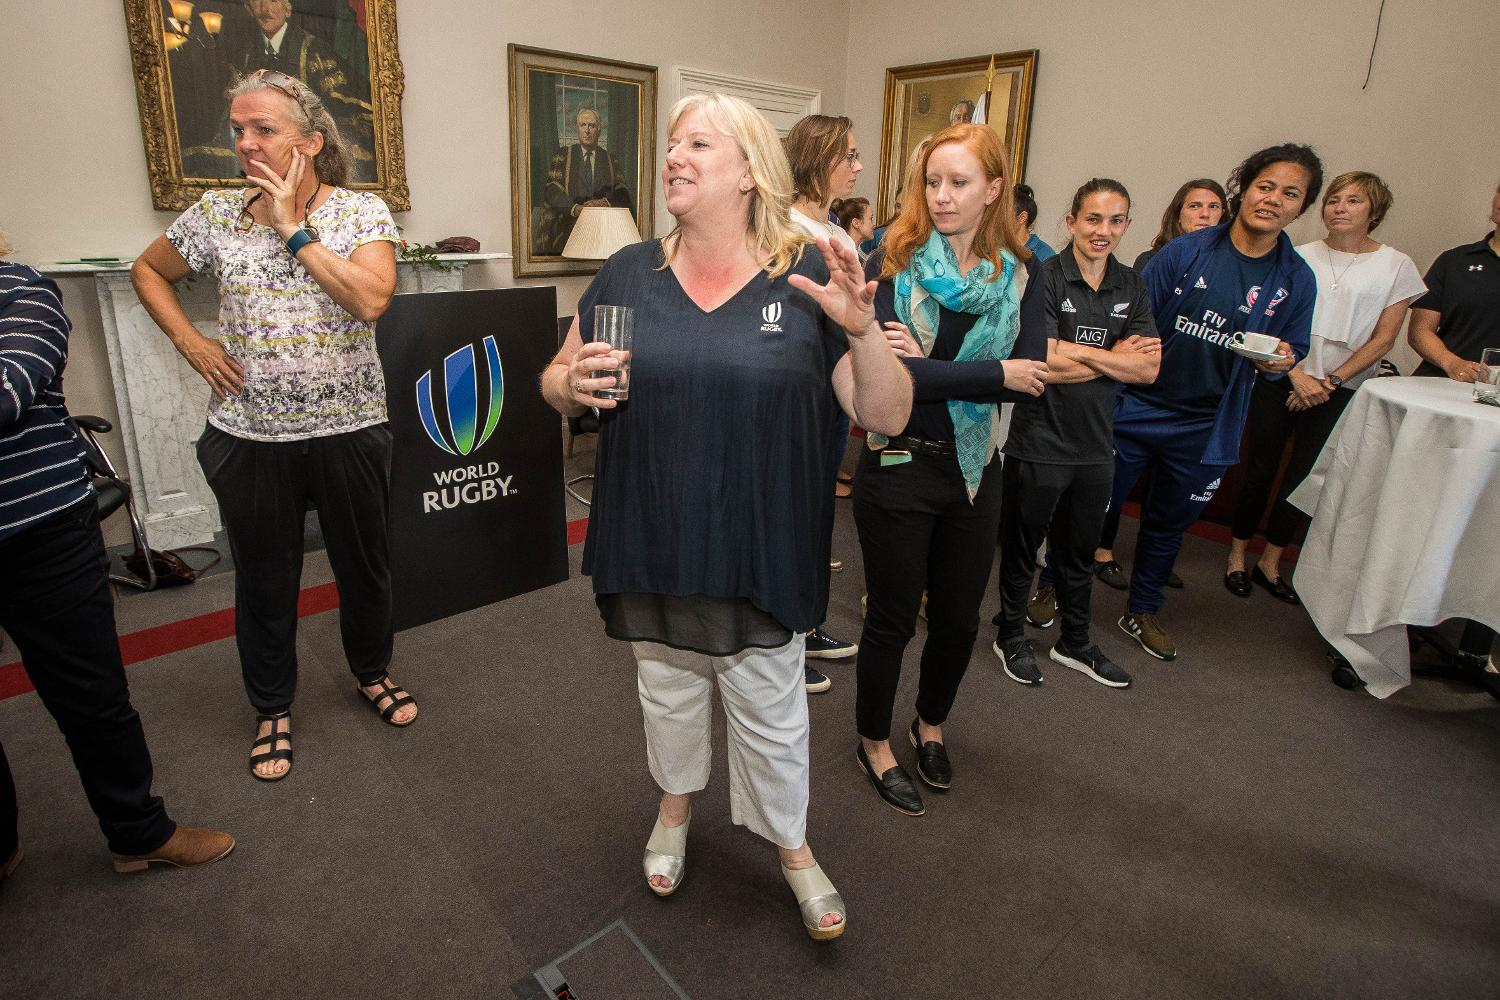 World Rugby Women's General Manager, Katie Sadlier speaks at the Captains Breakfast hosted for WRWC past and present leaders